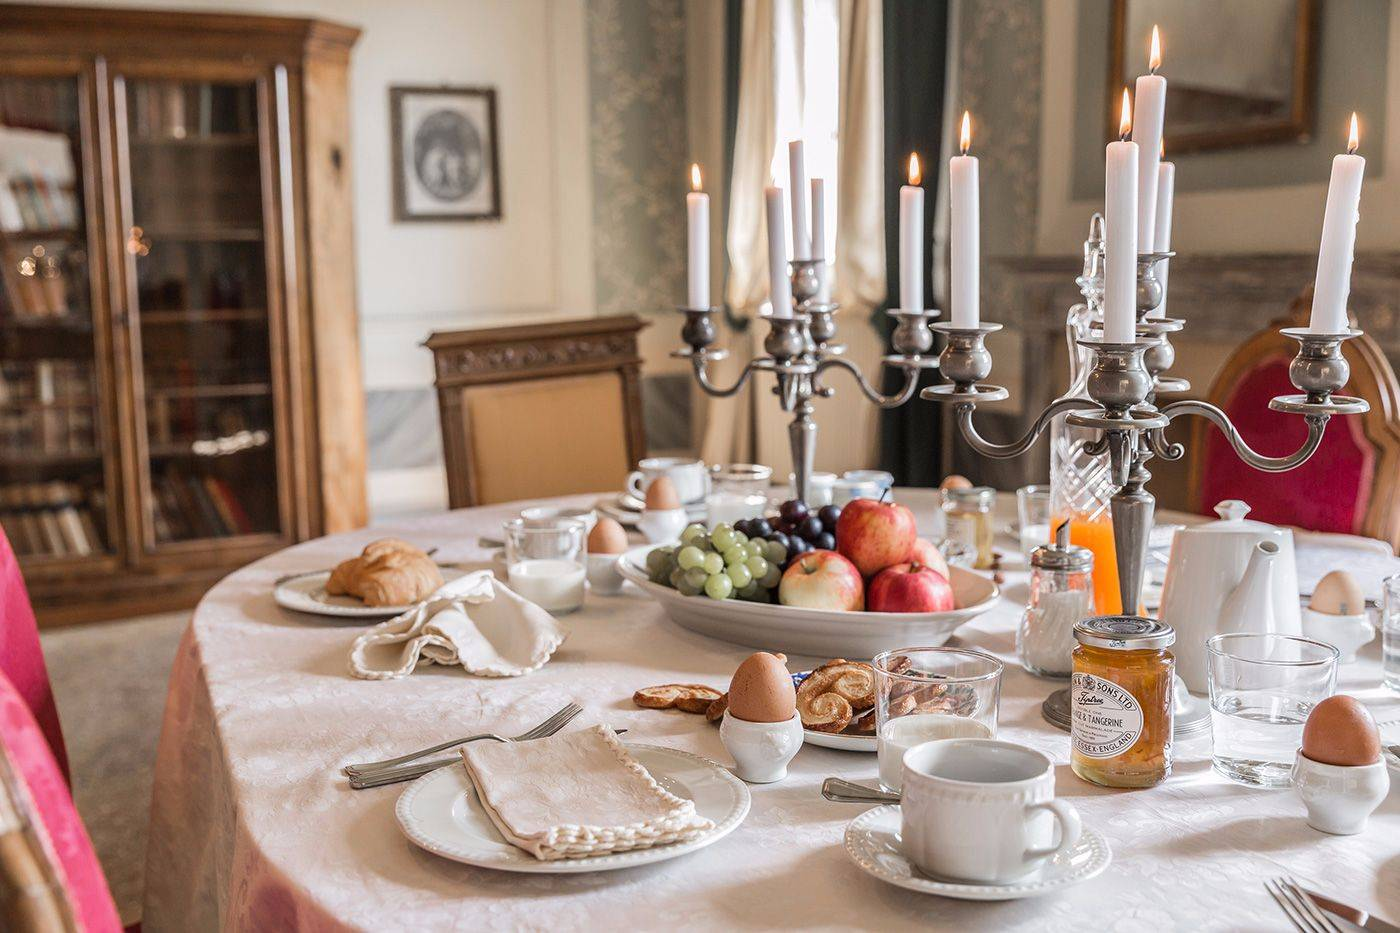 surprise your guests with a classy culinary experience